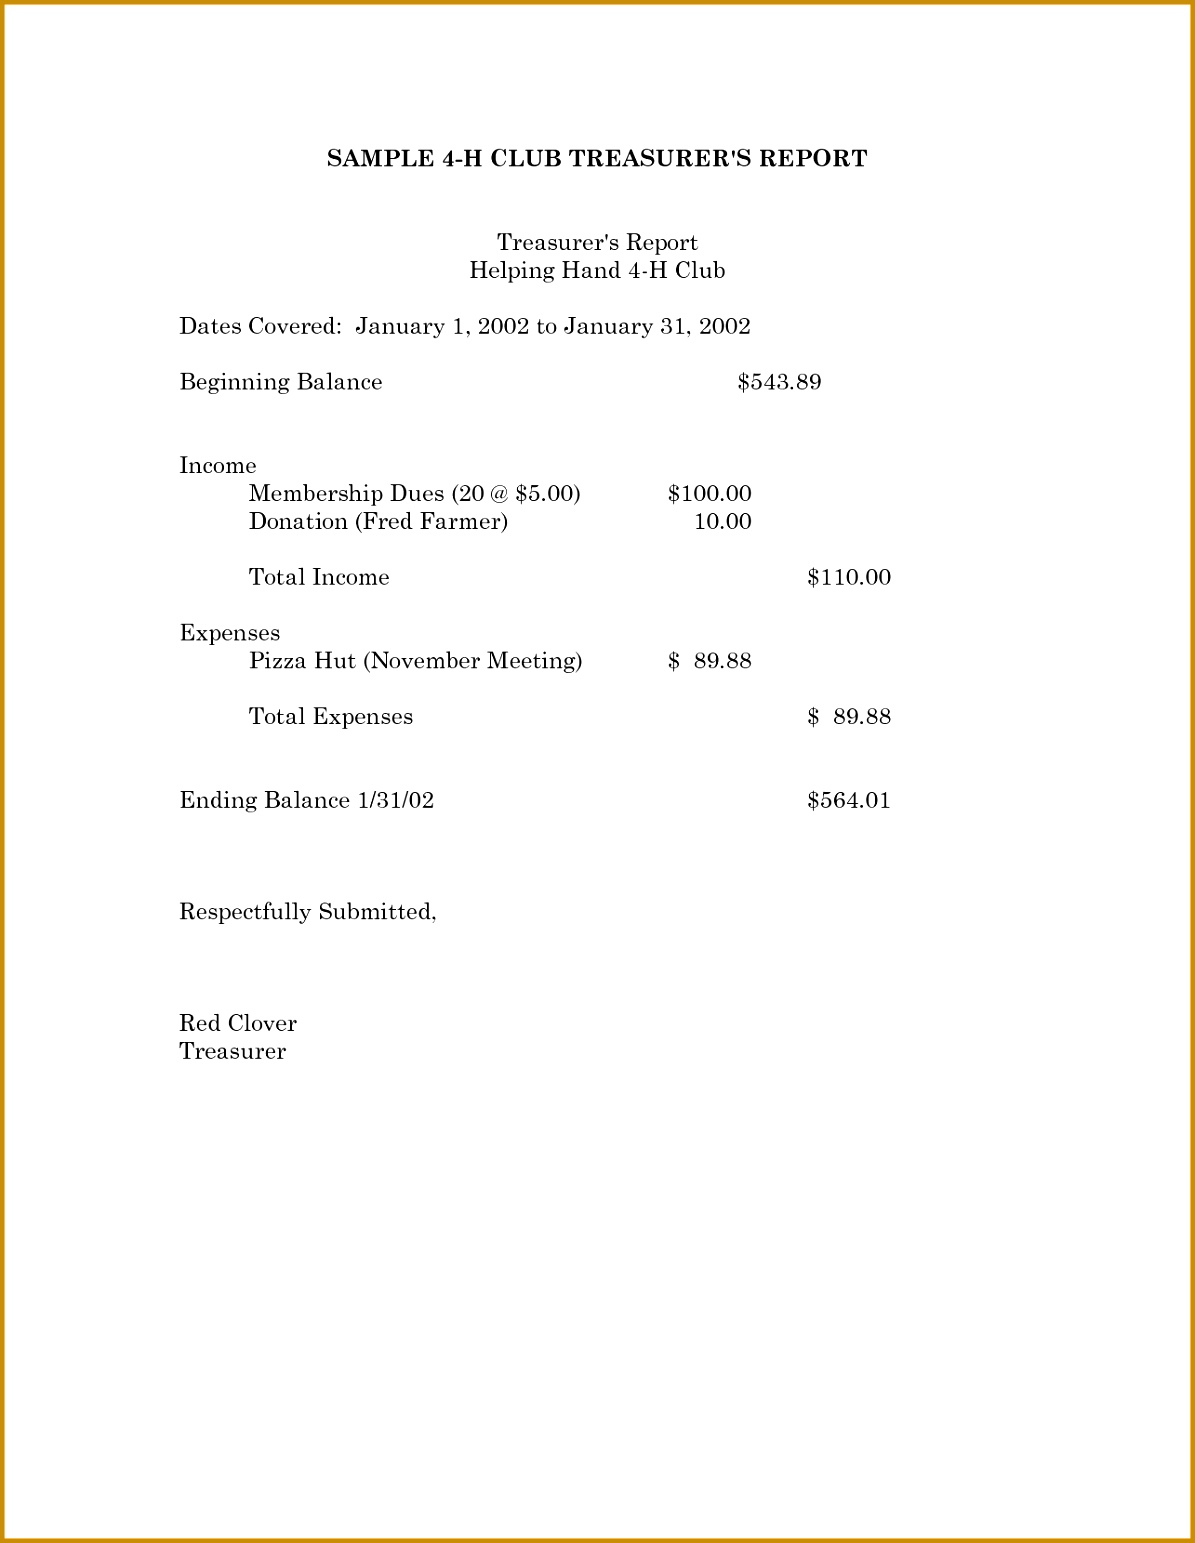 Expense Report Template Excel 2010 and 8 Treasurer S Report Template Expense Report 15431195